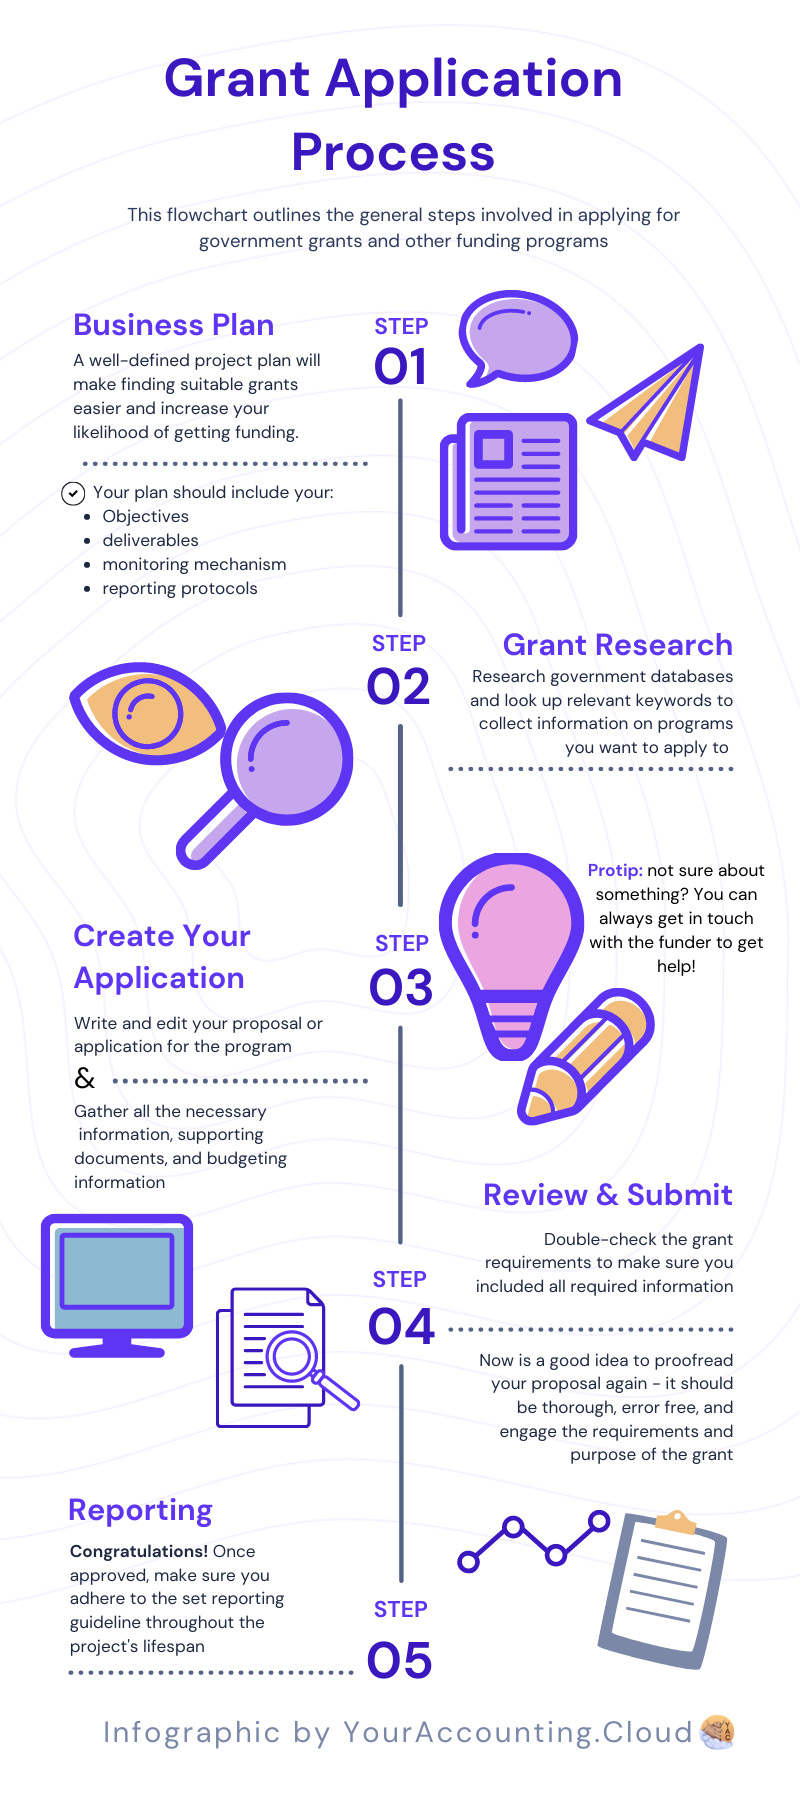 Grant Application Process Infographic Flowchart